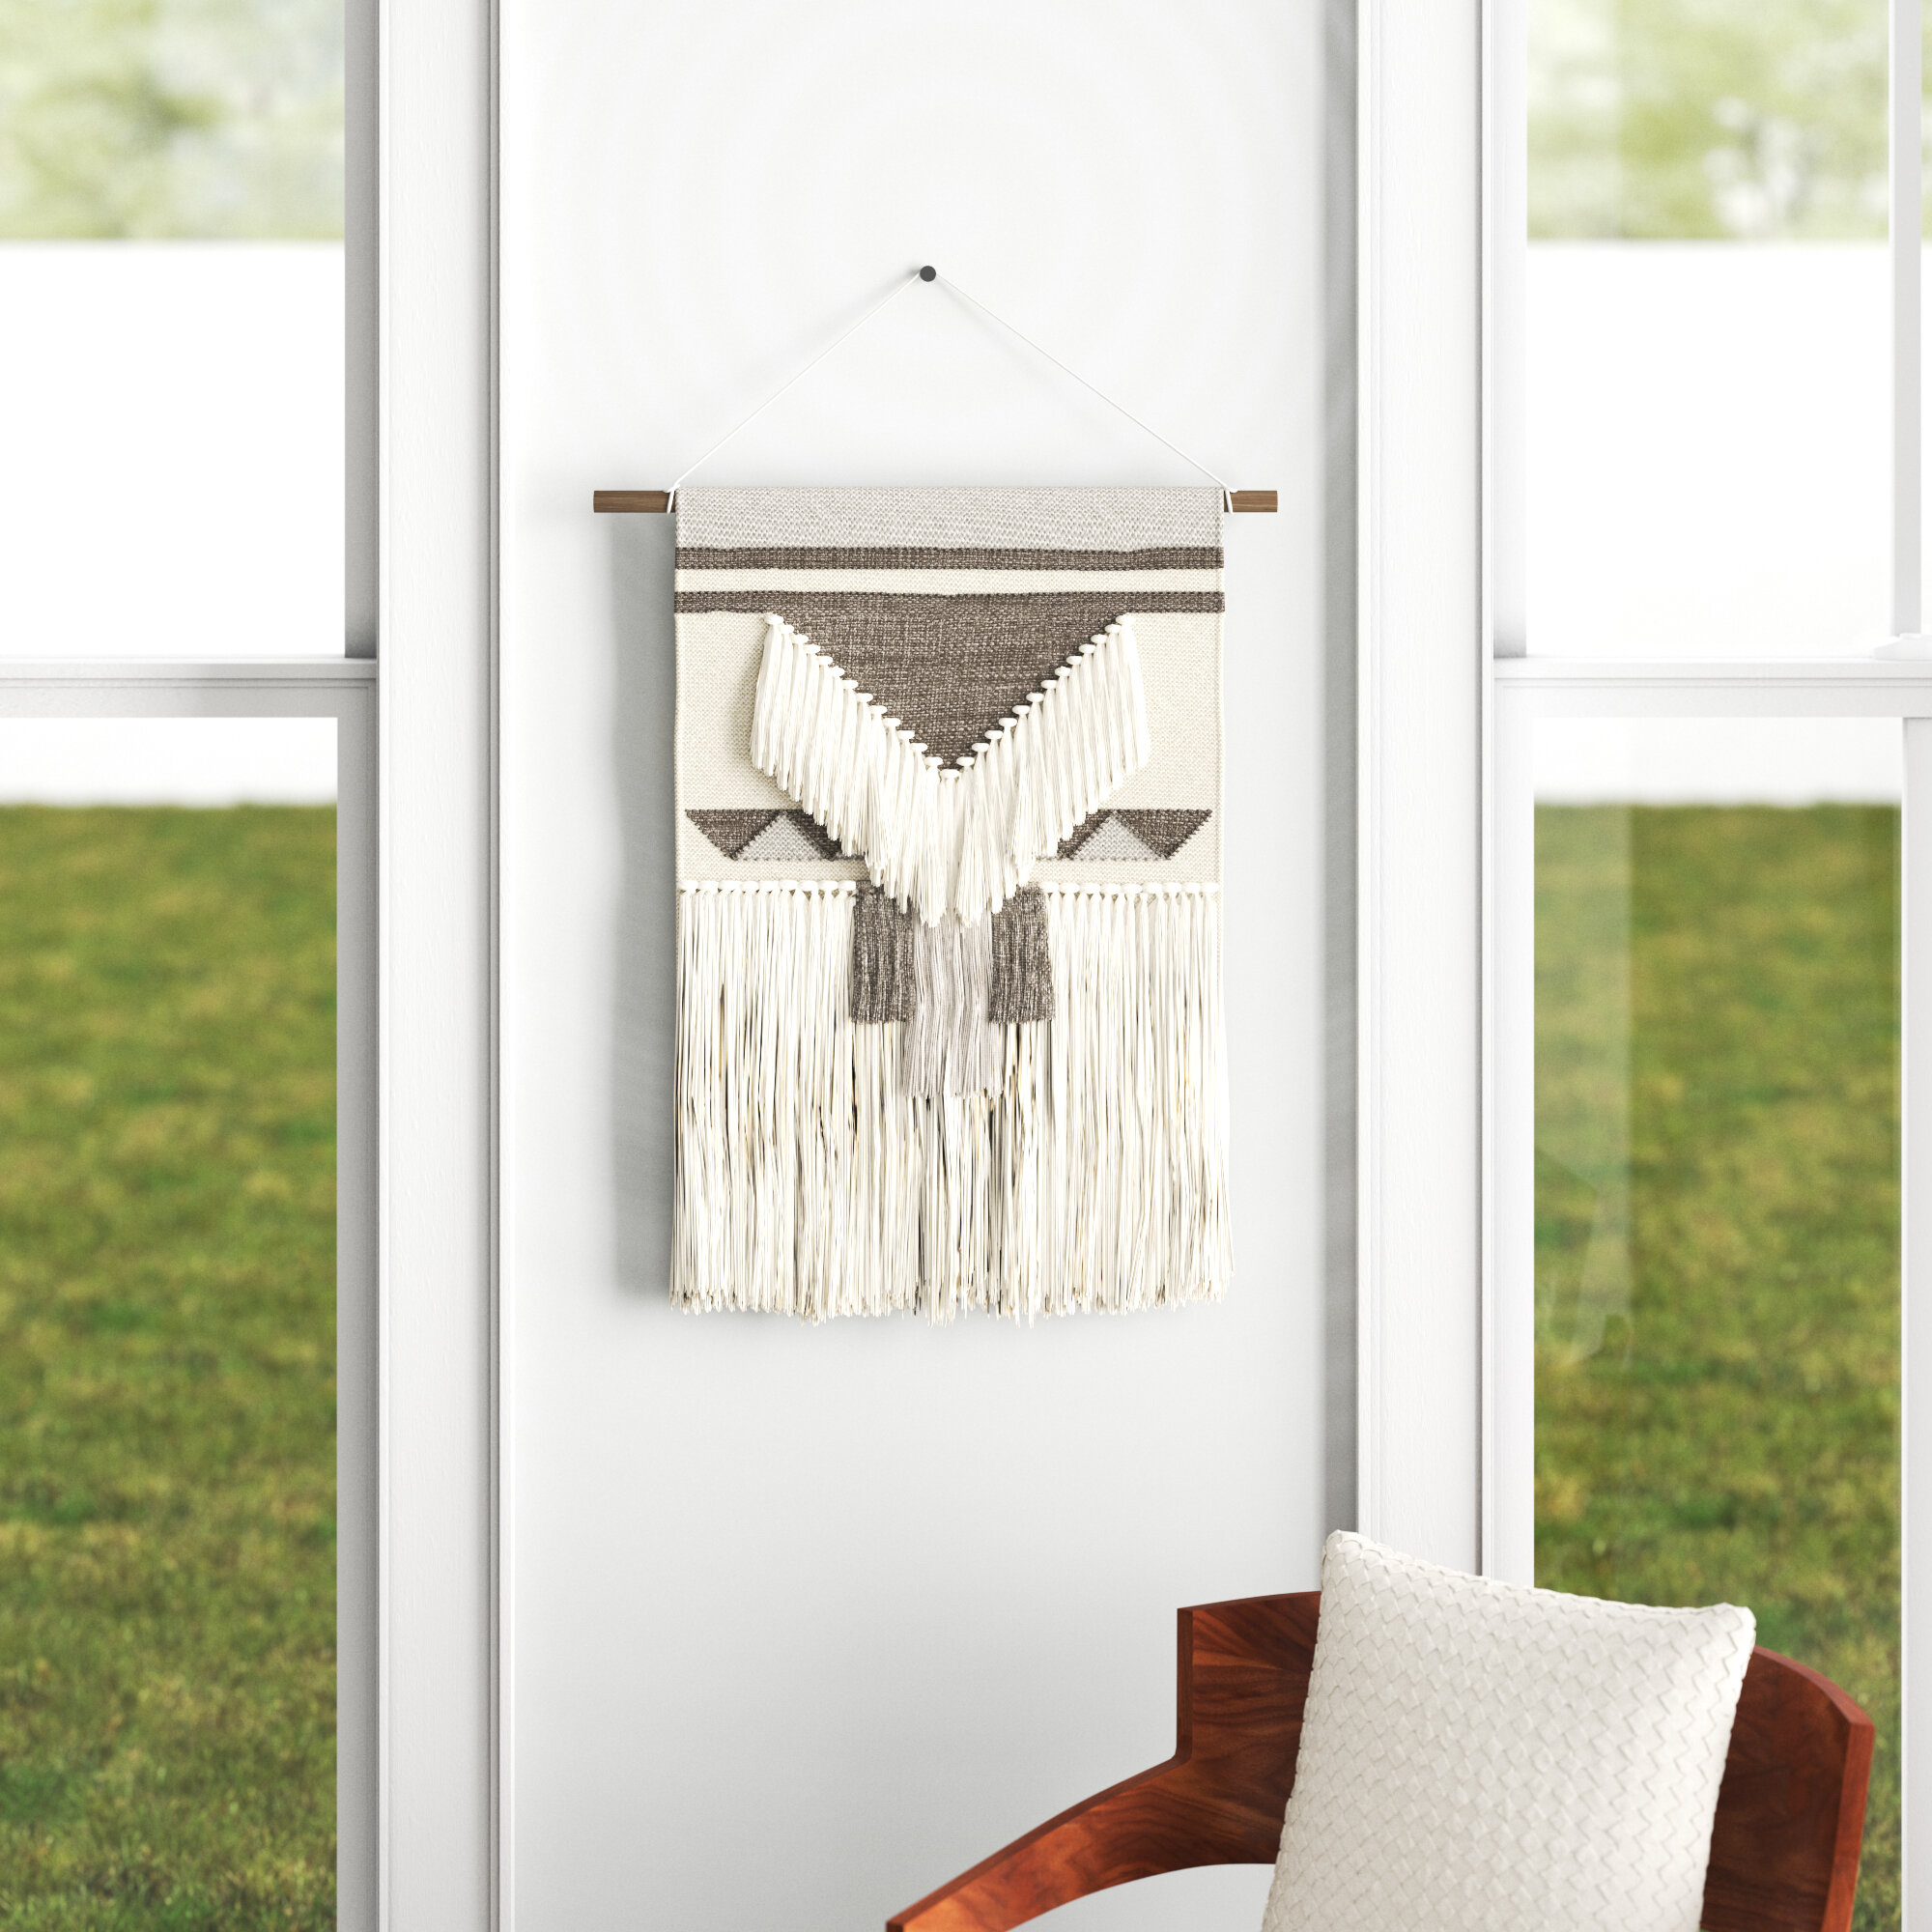 Wool Wall Hanging Intended For Most Popular Blended Fabric Saber Wall Hangings With Rod (View 14 of 20)